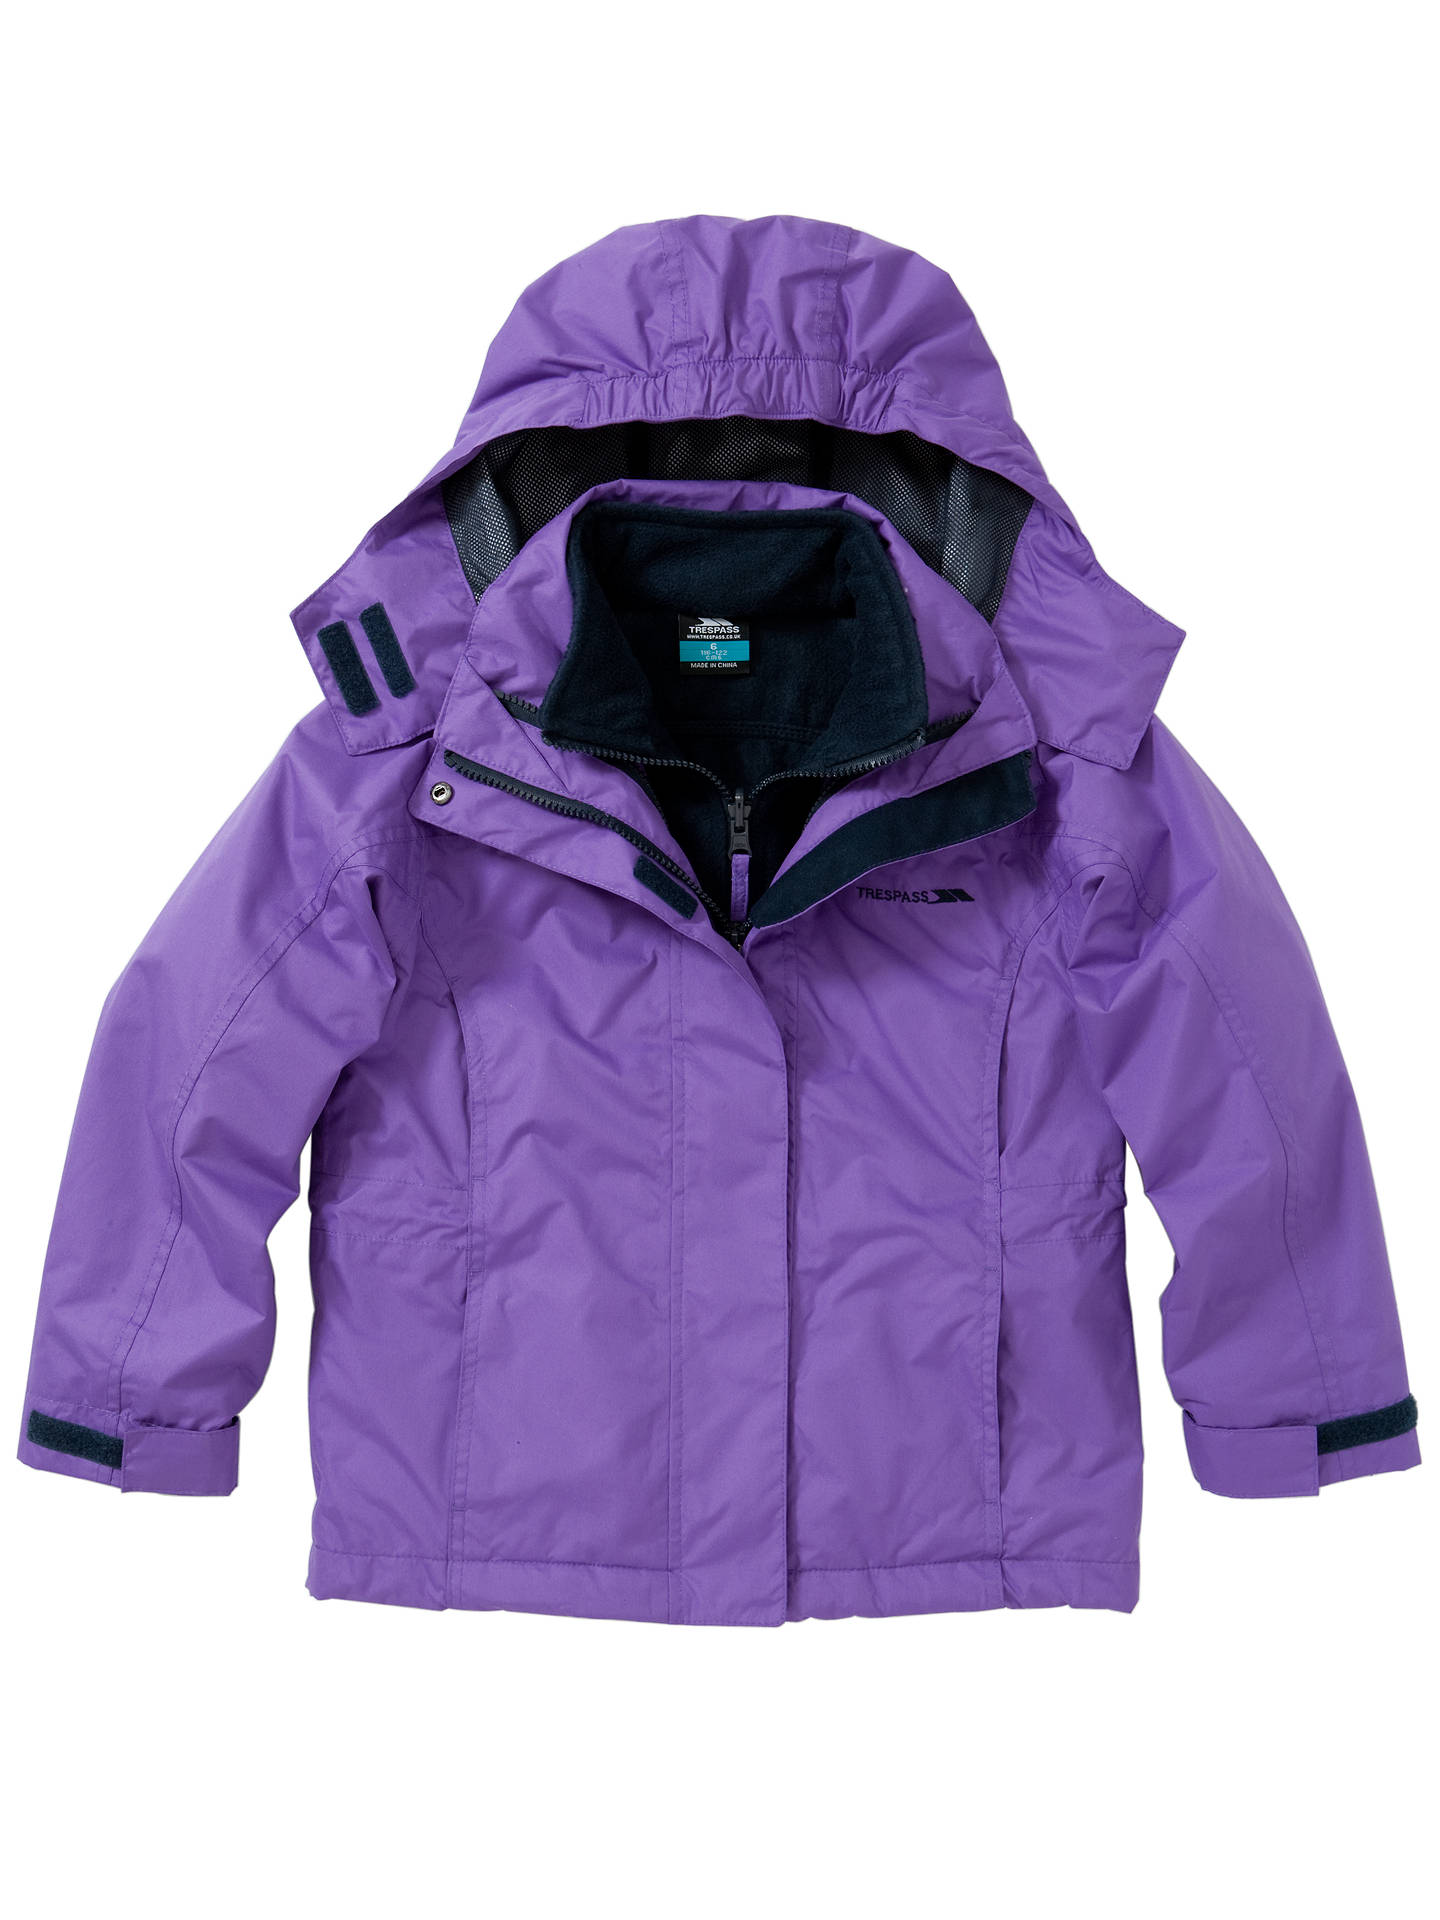 complete in specifications search for best fast color Trespass Girls' Acrasa 3 in 1 Jacket, Purple